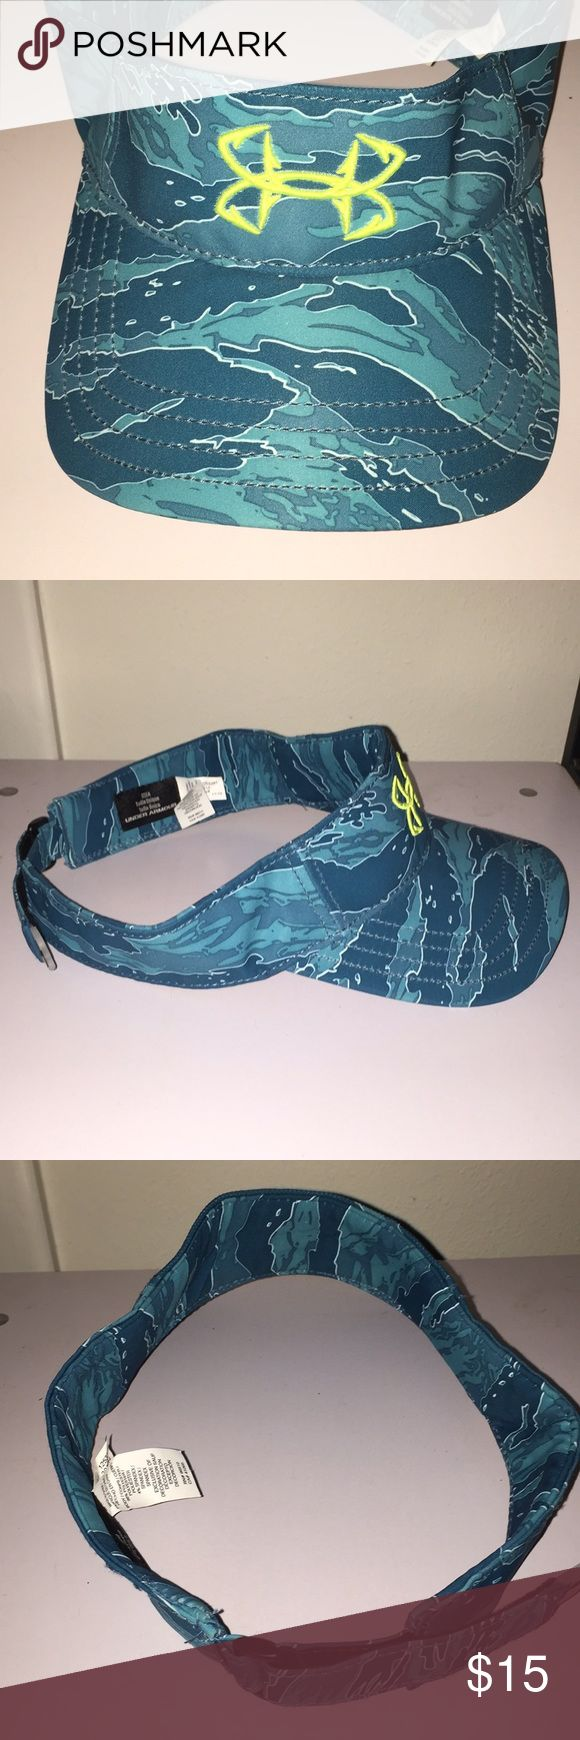 OSFA Under Armour men's visor turquoise camouflage Under Armour men's visor turquoise green/blue camouflage Very good condition  No rips, holes, tears or stains Adjustable strap One size fits all Under Armour Accessories Hats